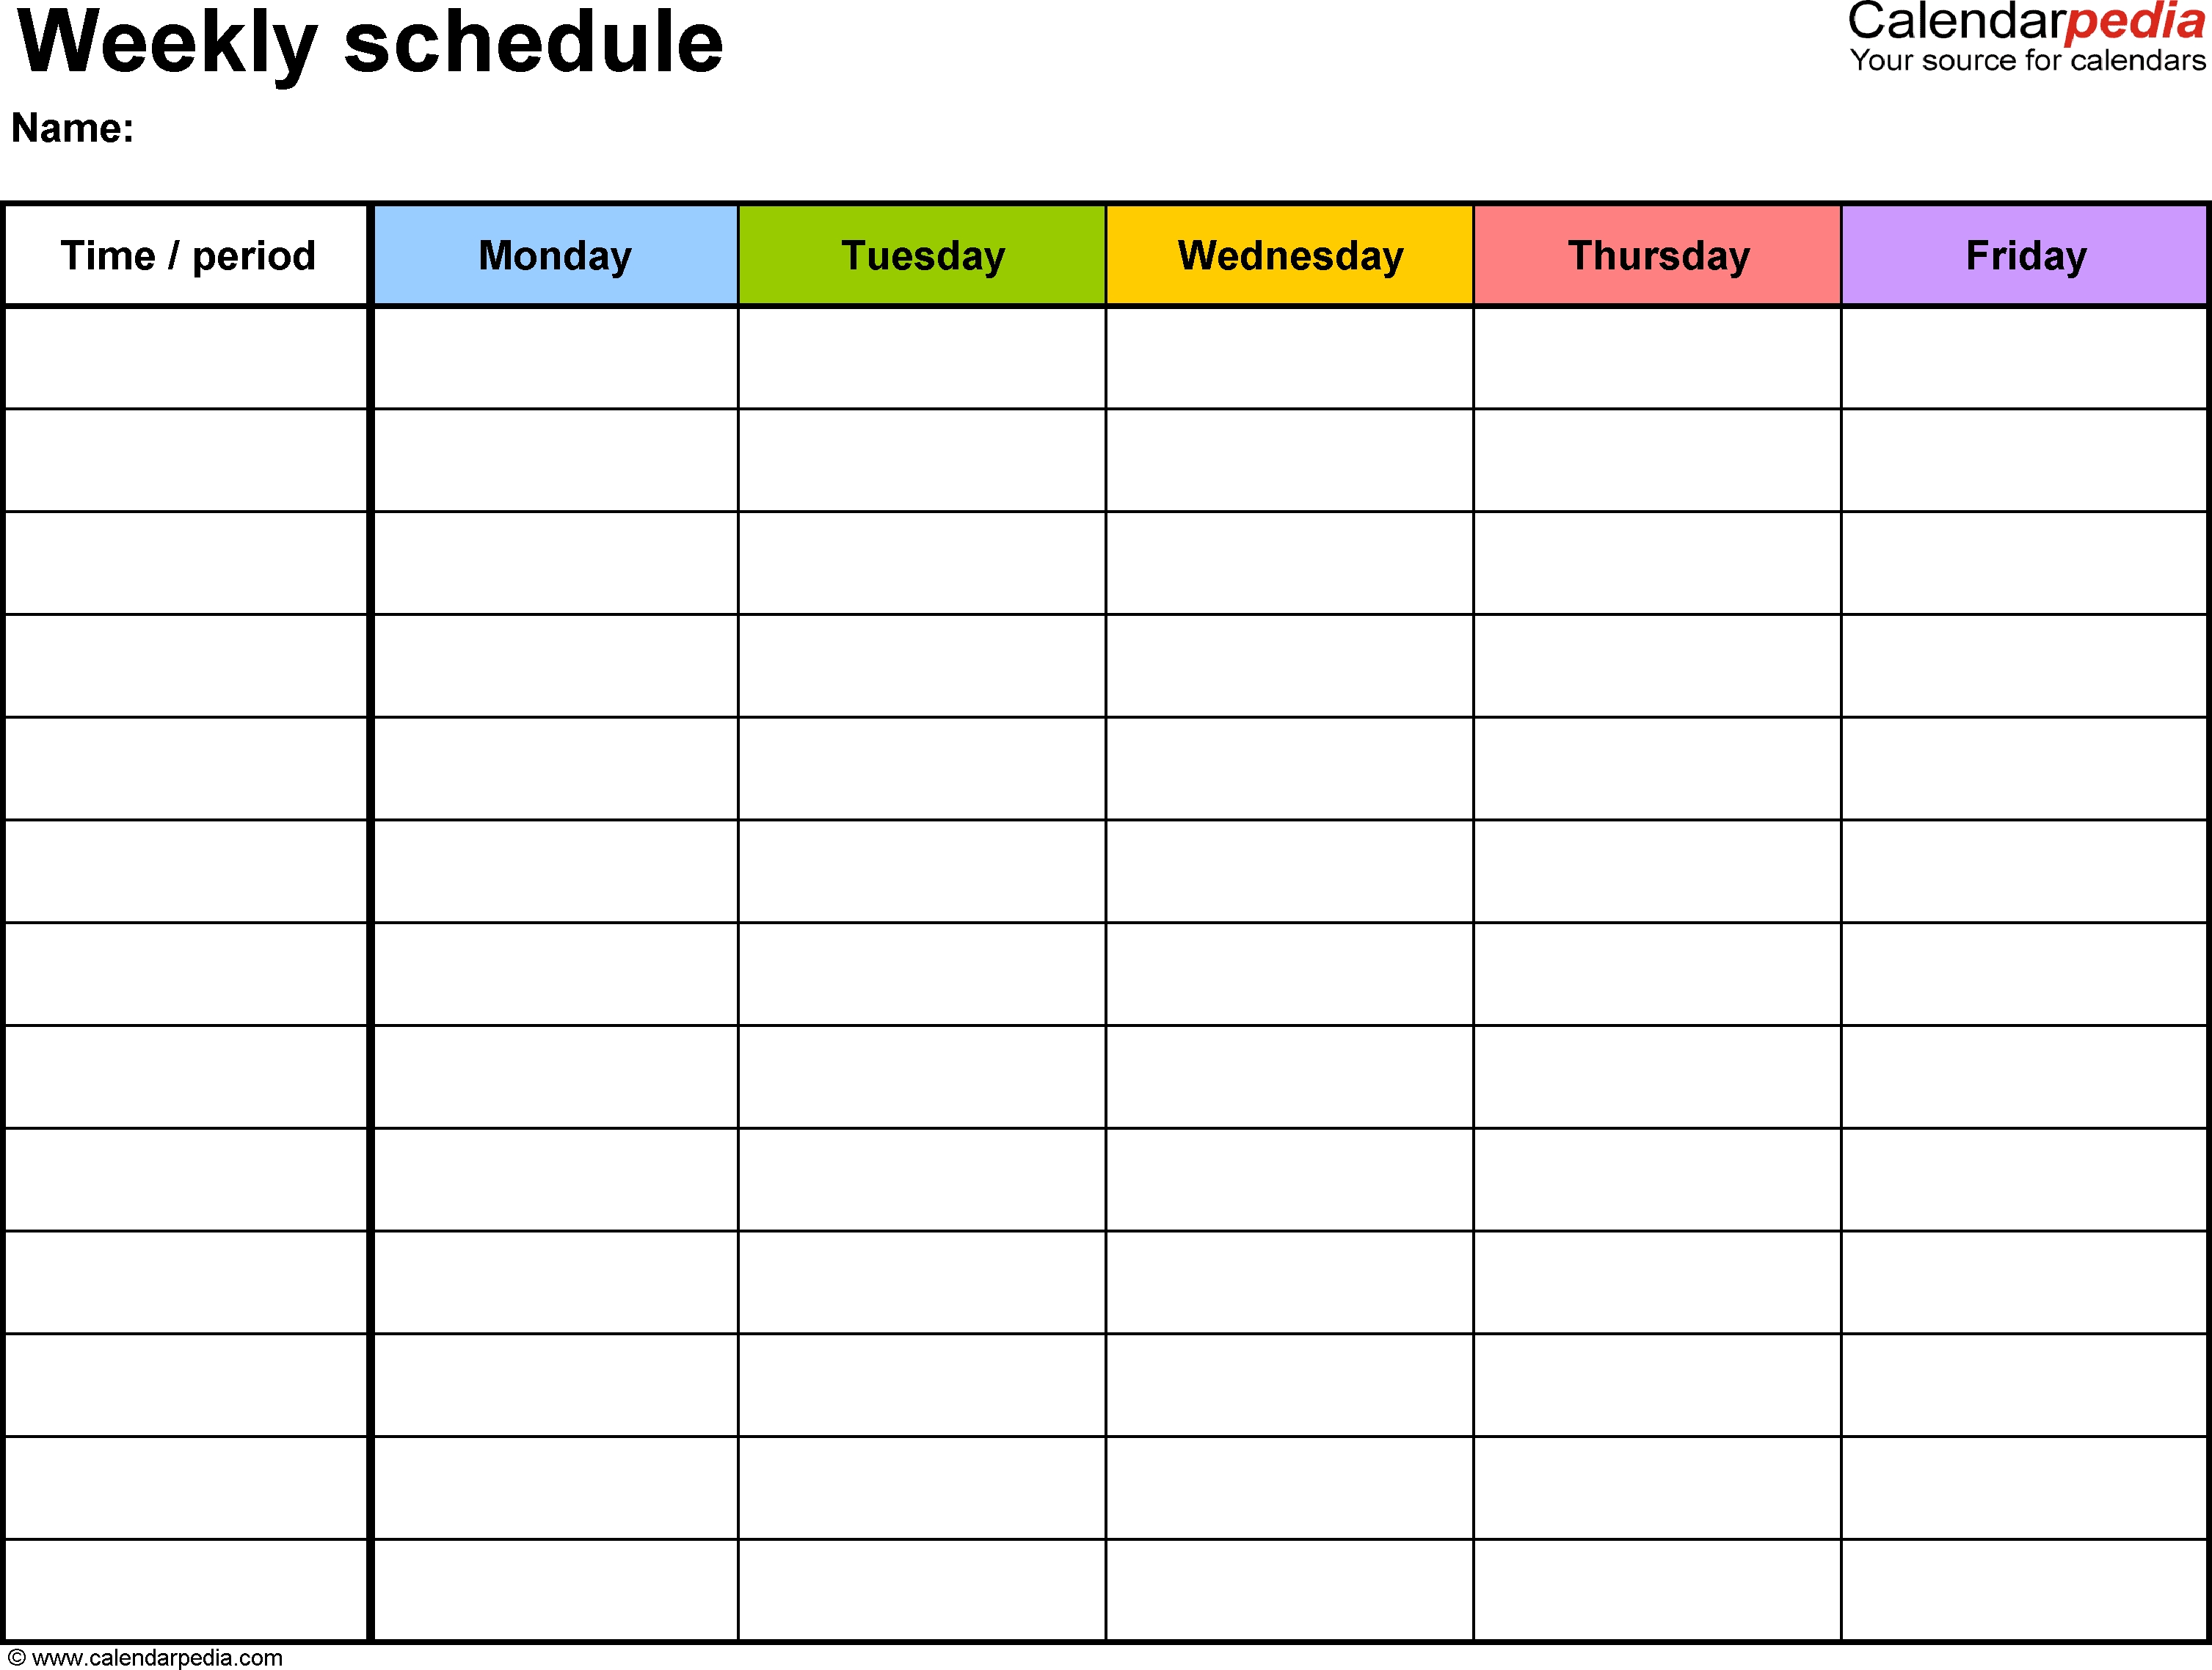 Free Weekly Schedule Templates For Word - 18 Templates Calendar Template By Week